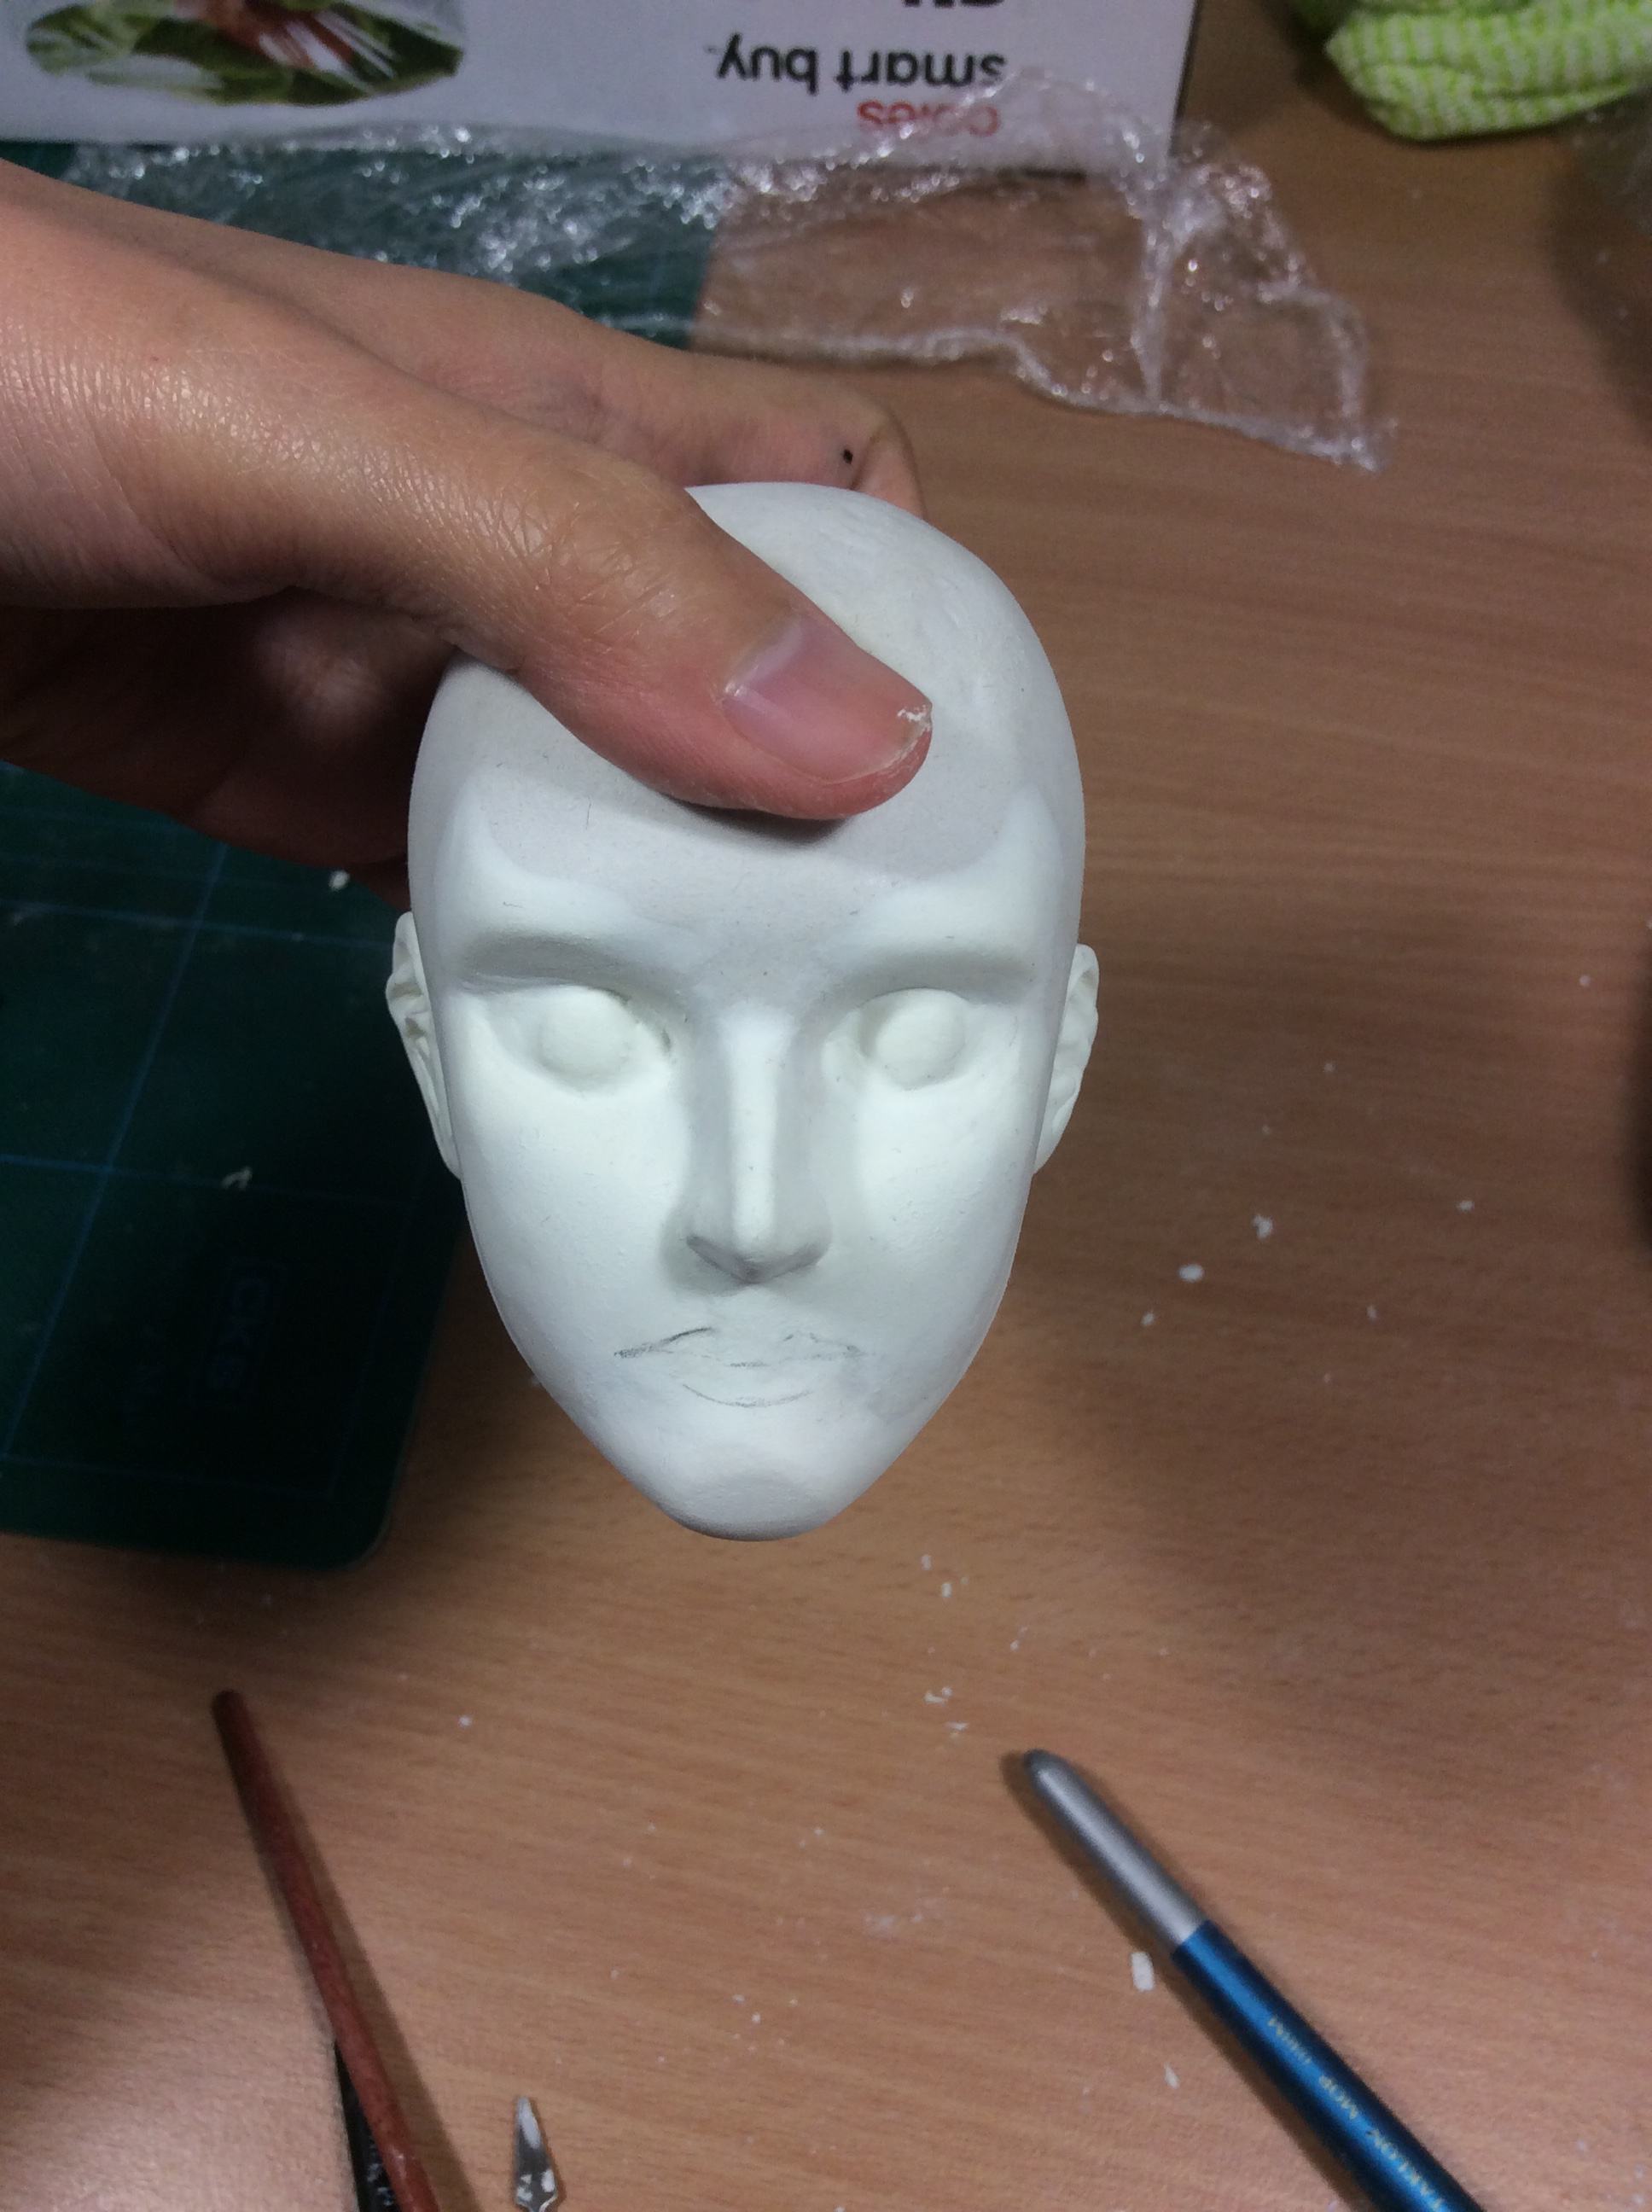 jemse---my-first-doll-head-making-progress-diary-part-2_31602475103_o